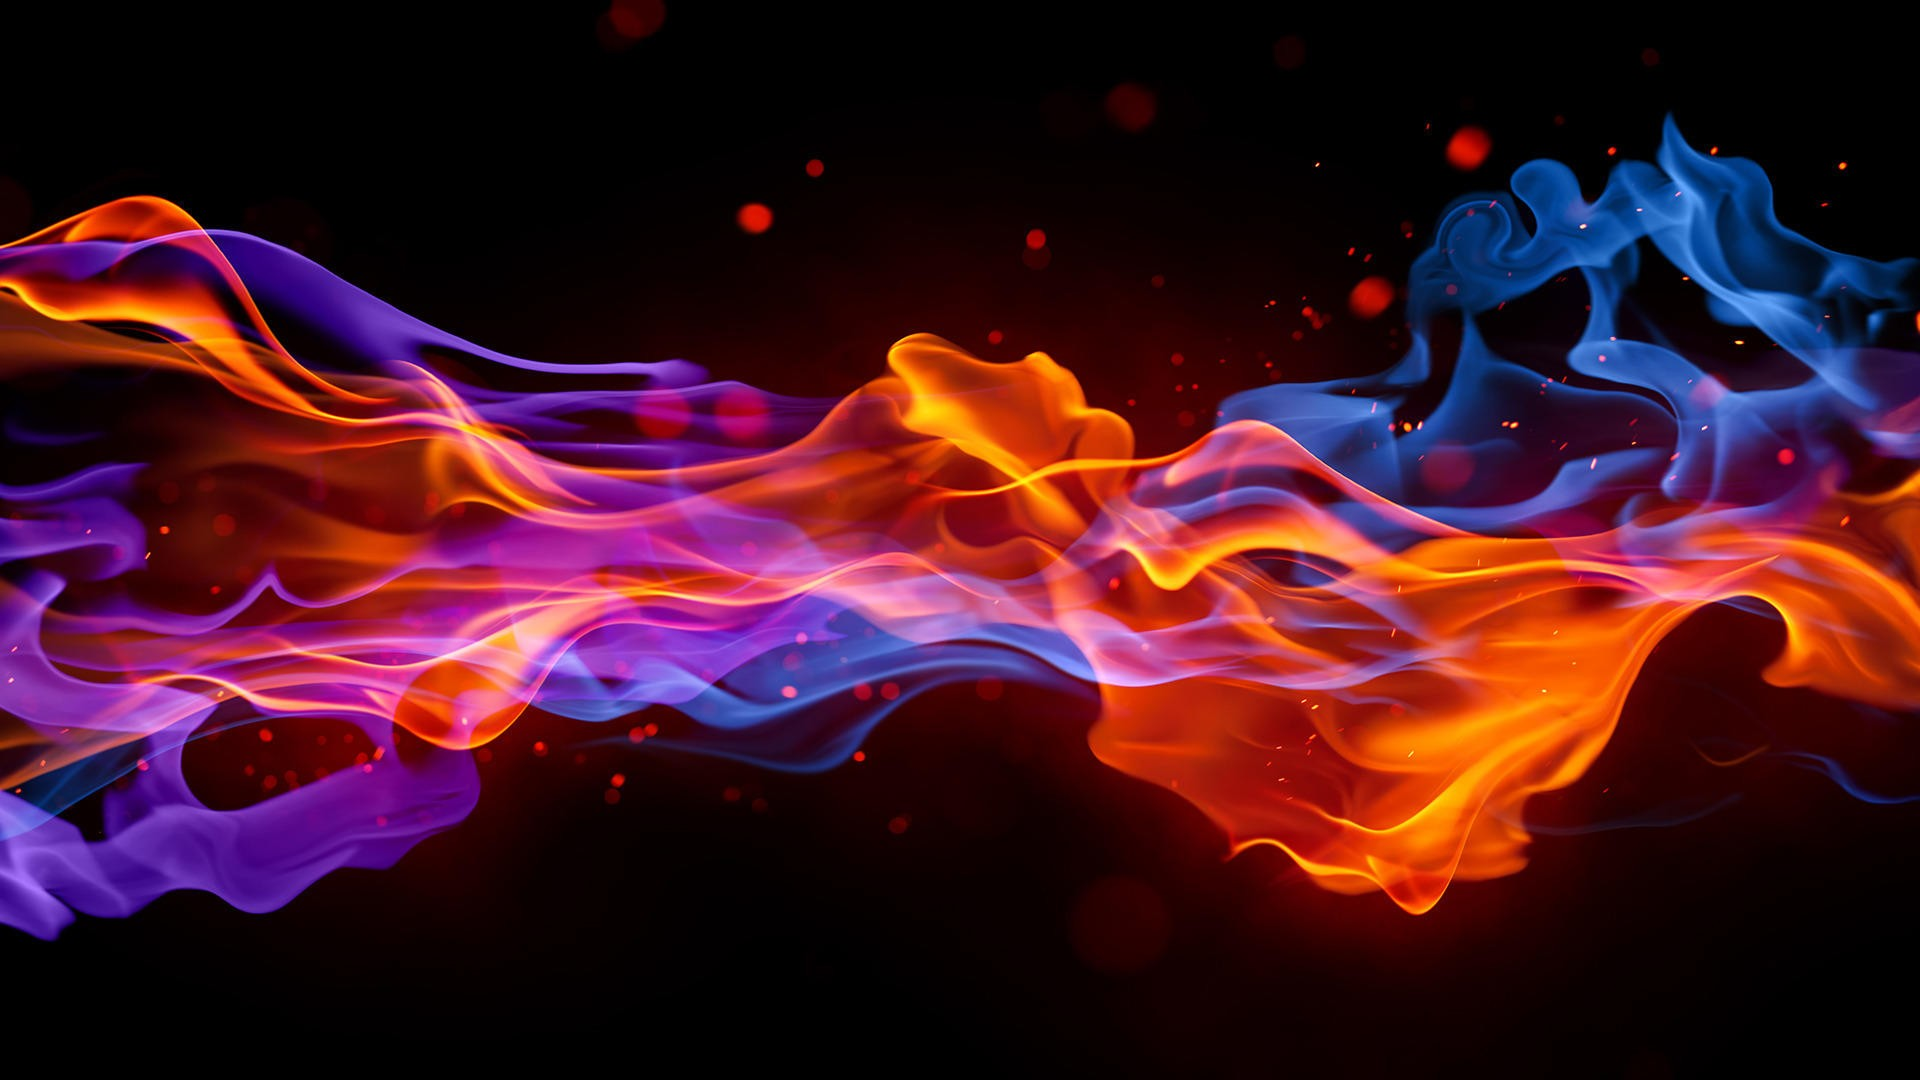 awesome background pictures download free cool high resolution